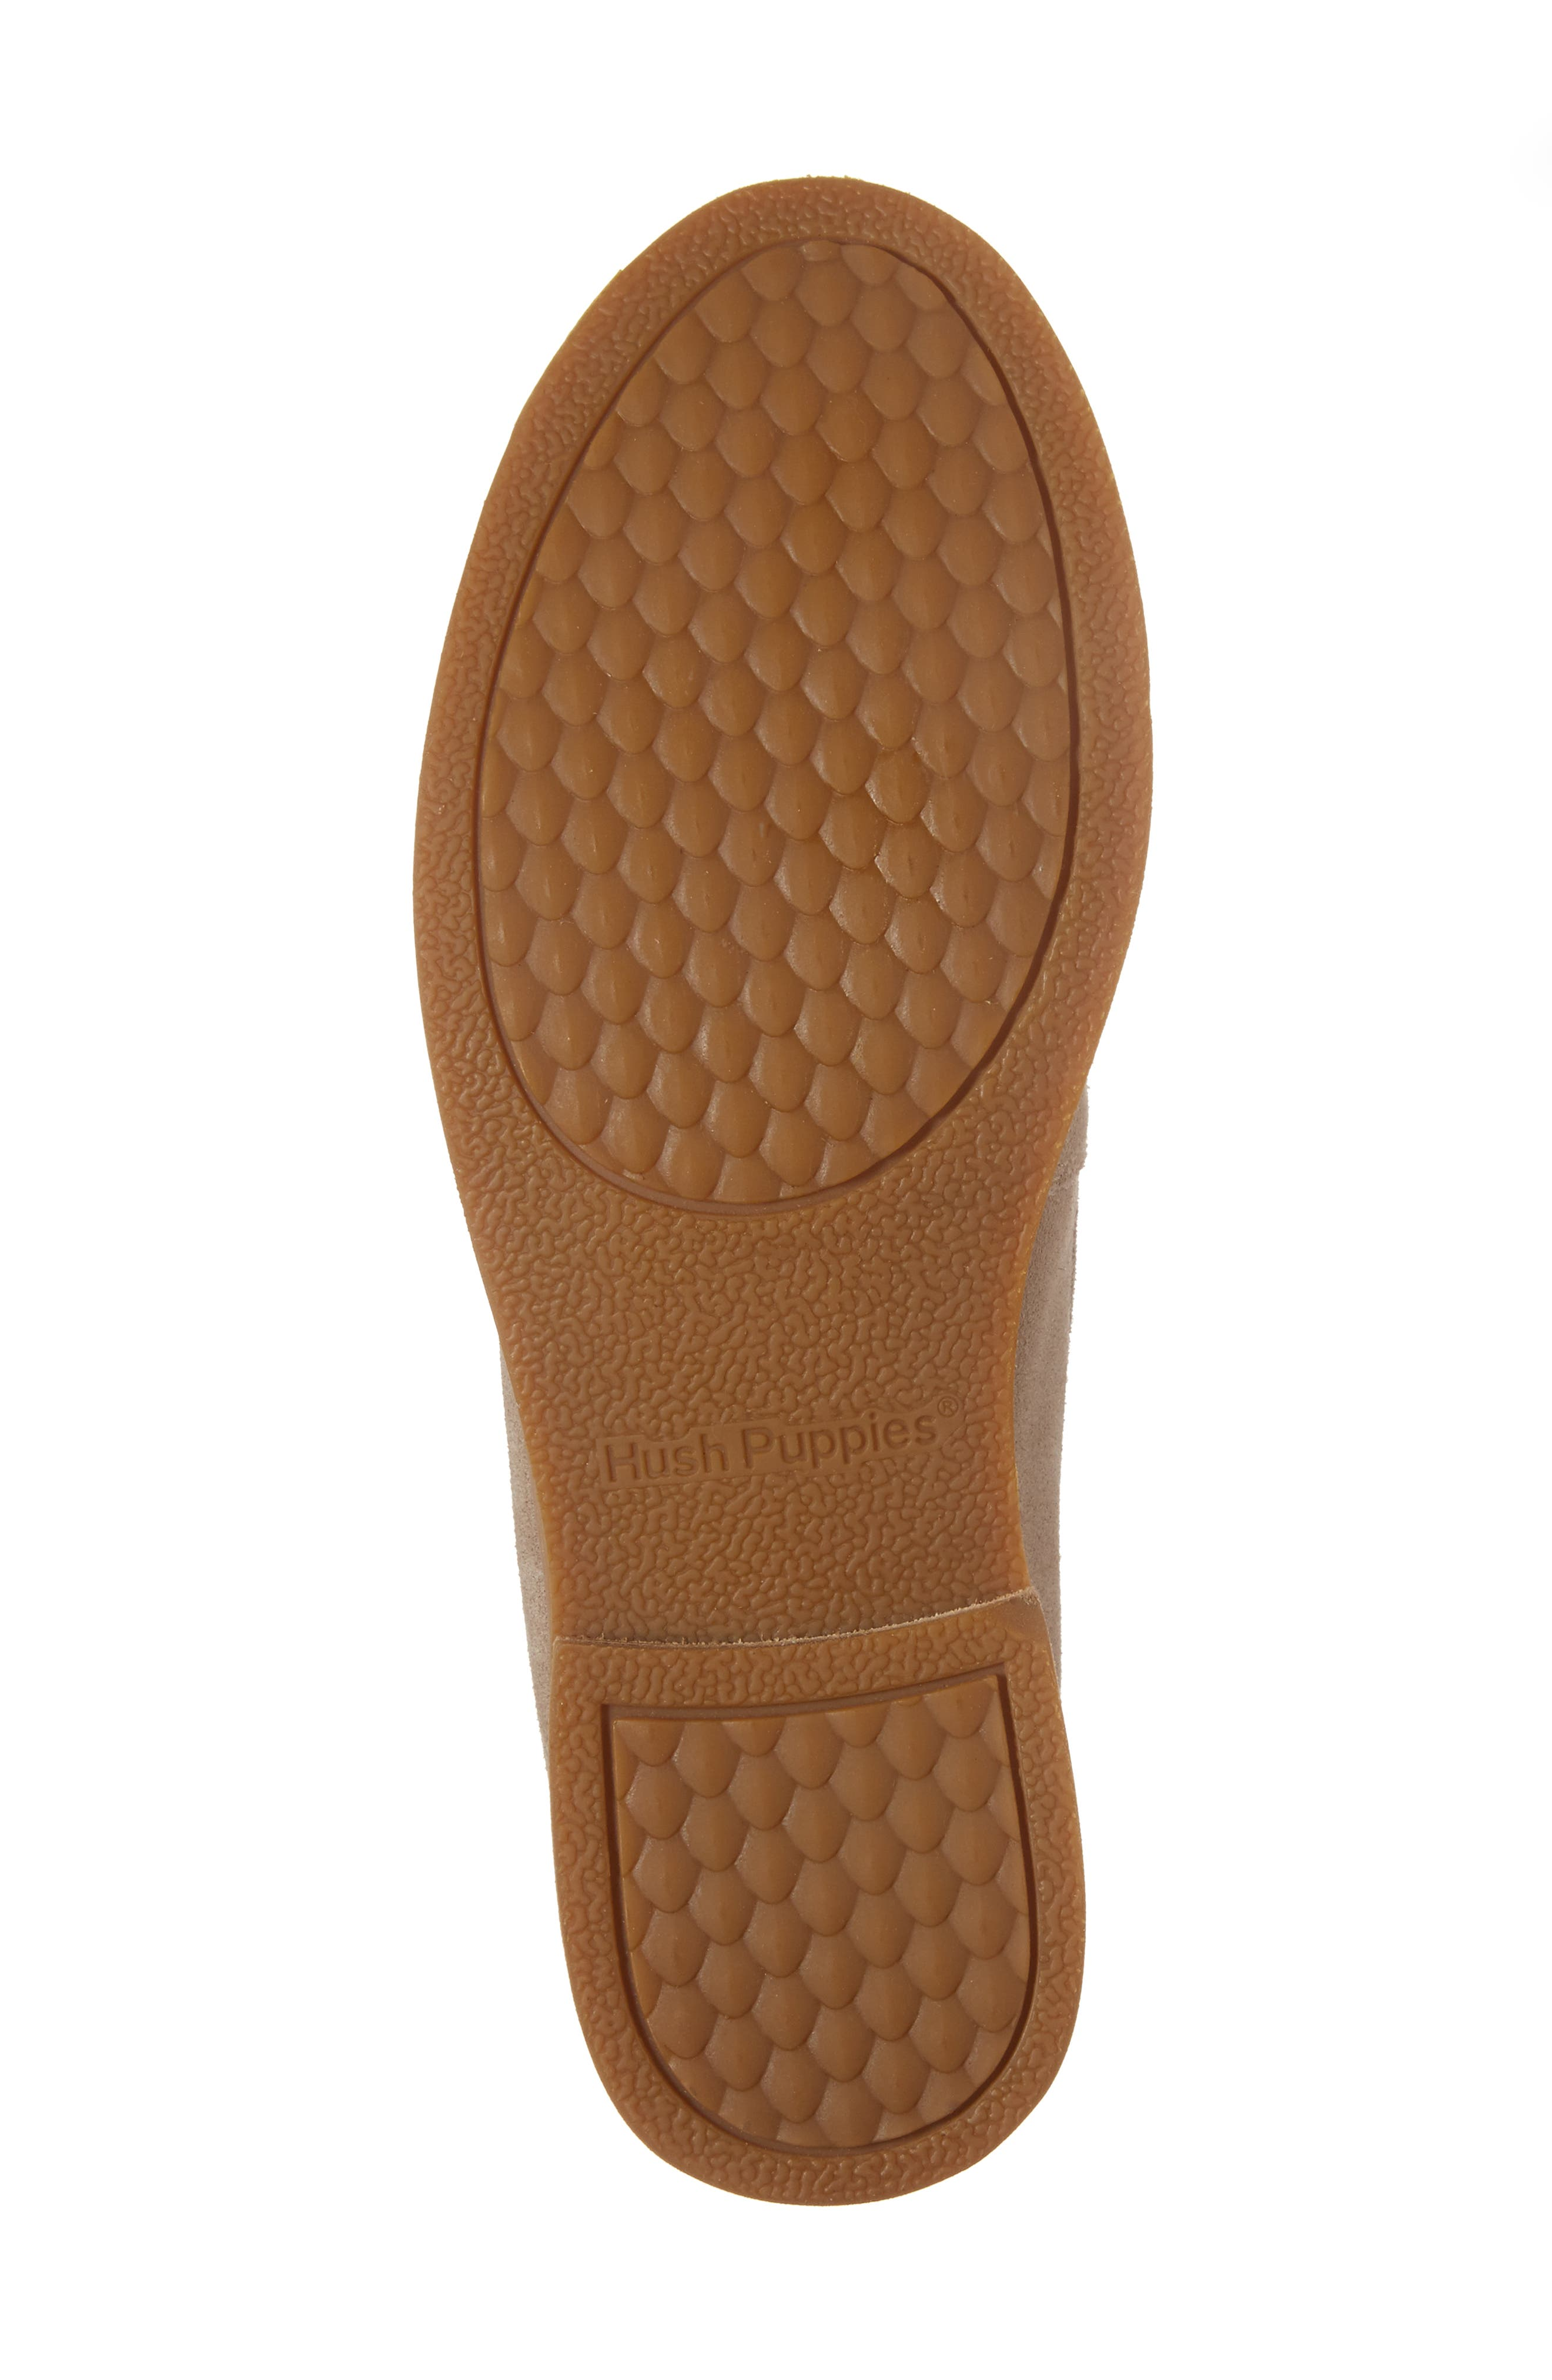 Aubree Chardon Loafer,                             Alternate thumbnail 6, color,                             Taupe Suede